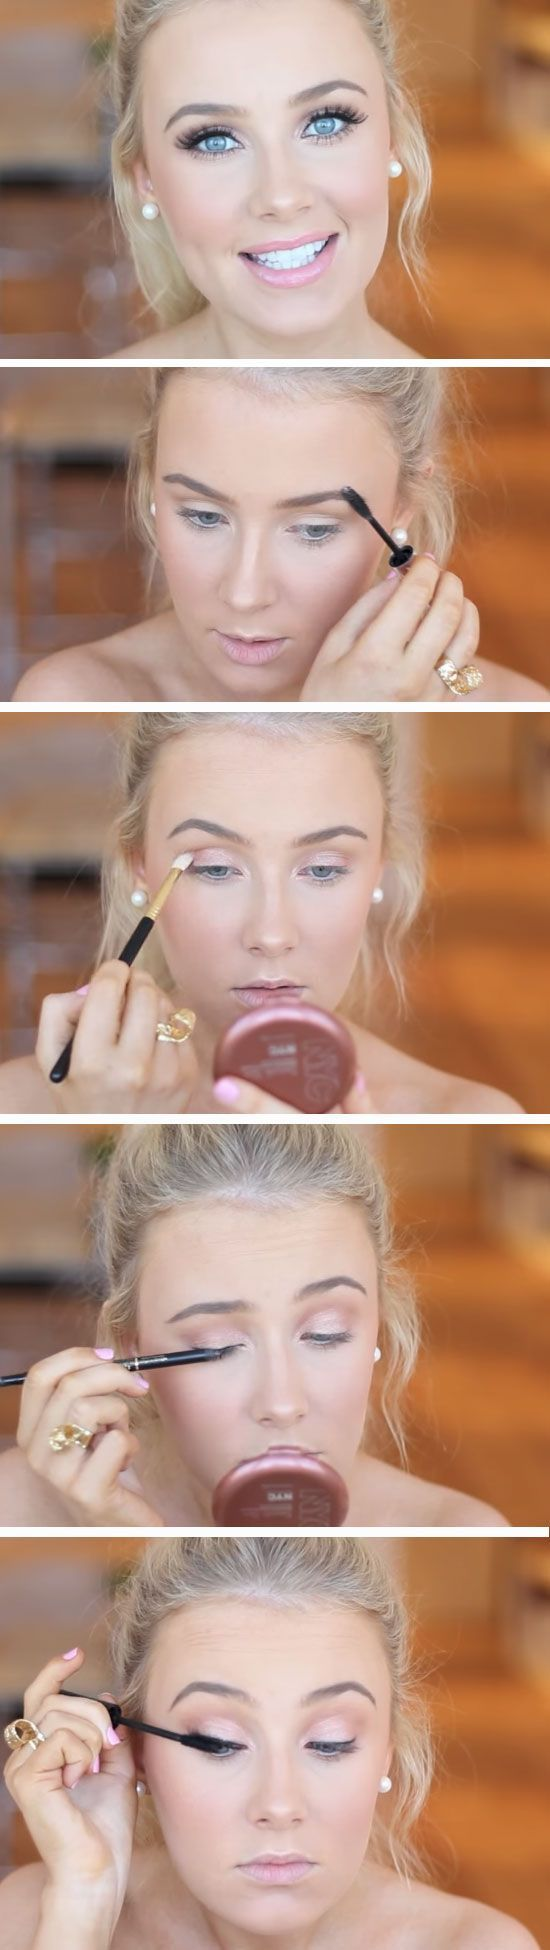 Natural | Awesome Prom Makeup Ideas for Blue Eyes | DIY New Years Eve Makeup Looks Eyeshadows